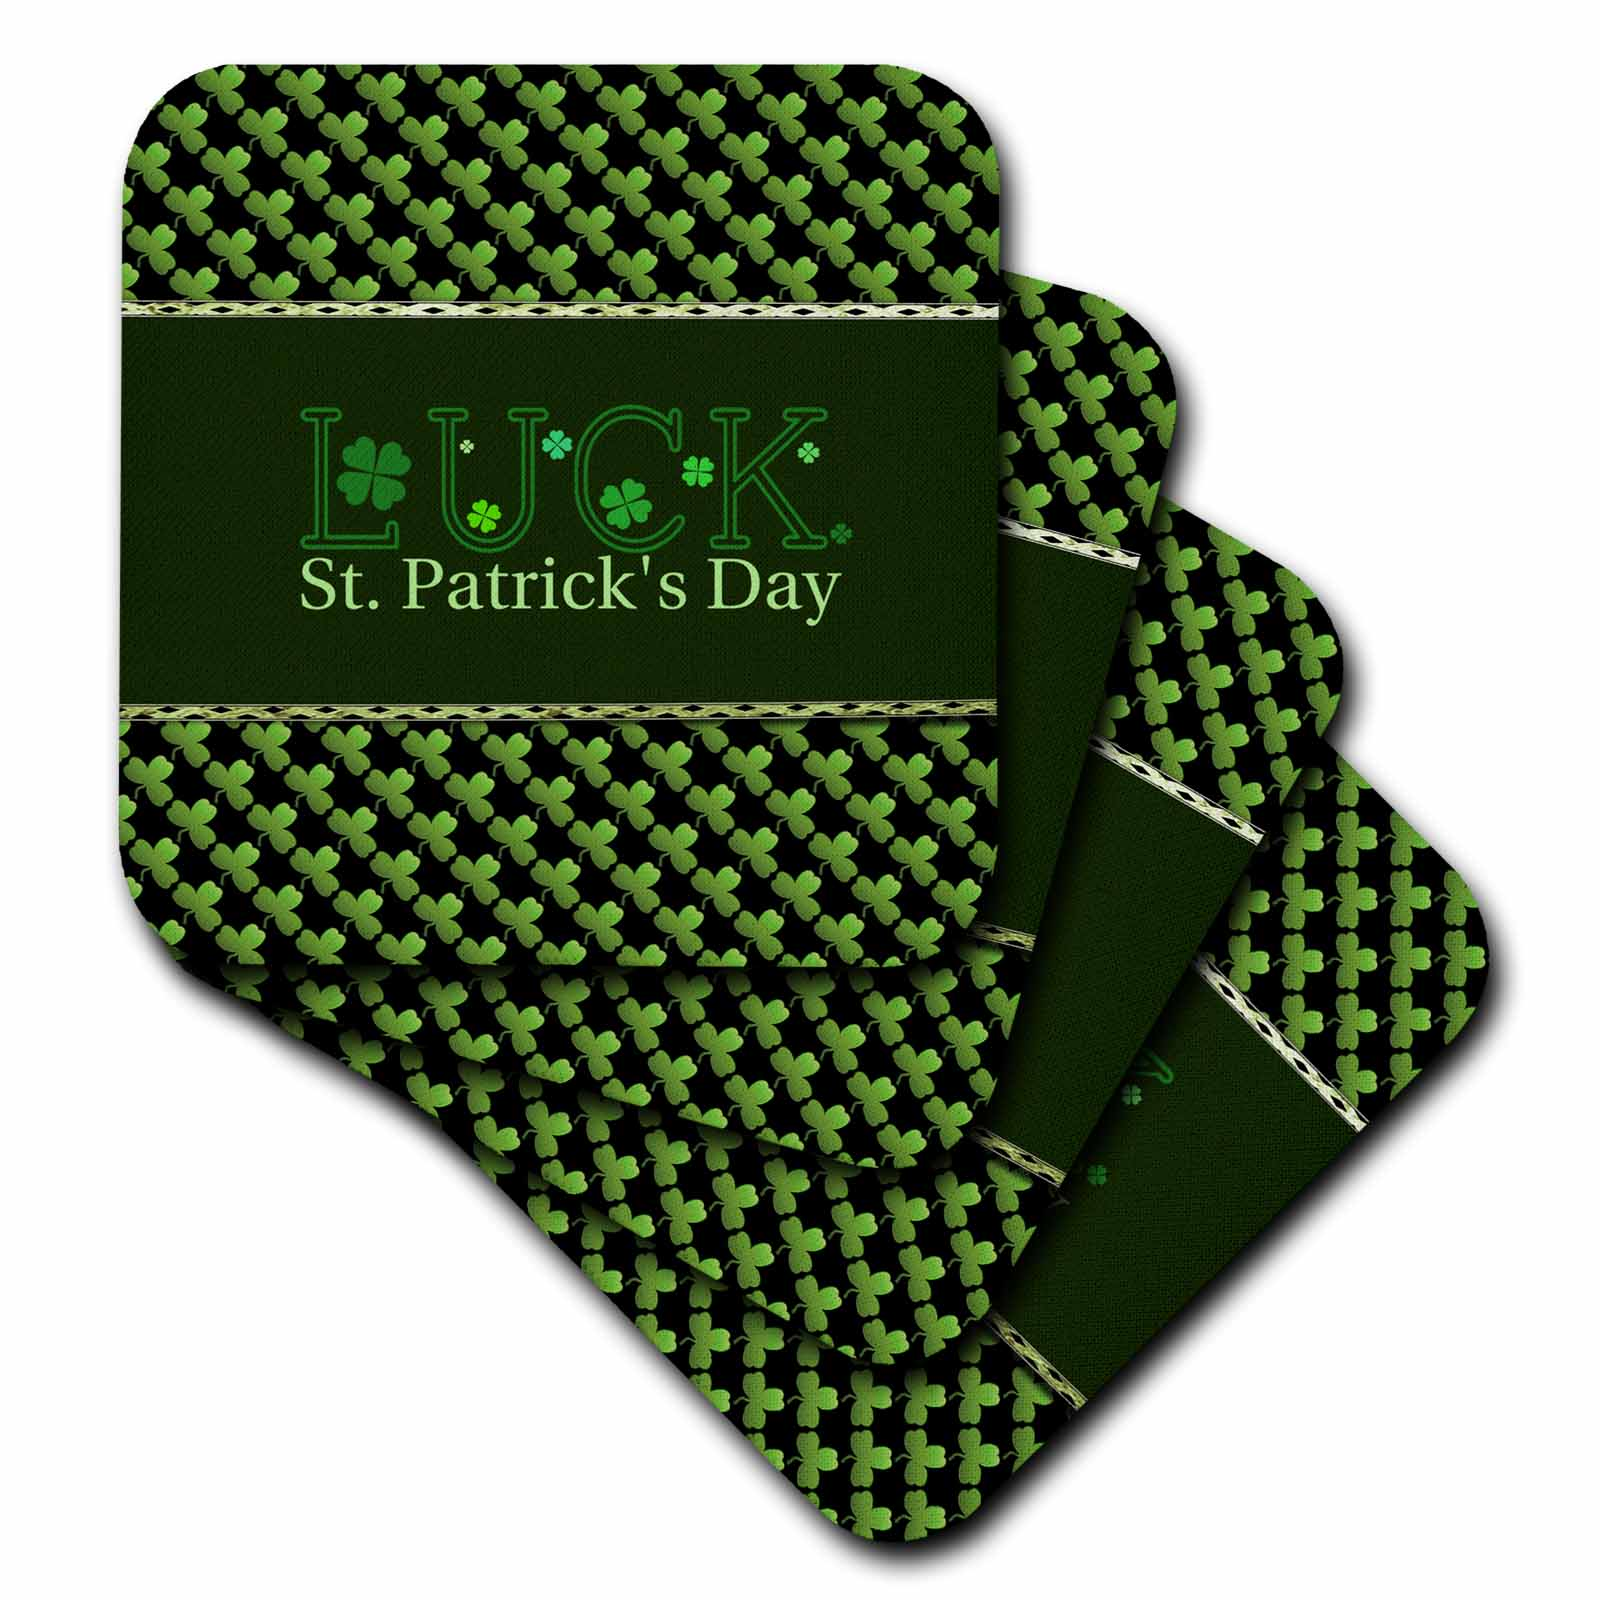 3dRose Luck St. Patrick Day, Shamrocks, Green and Black - Ceramic Tile Coasters, set of 4